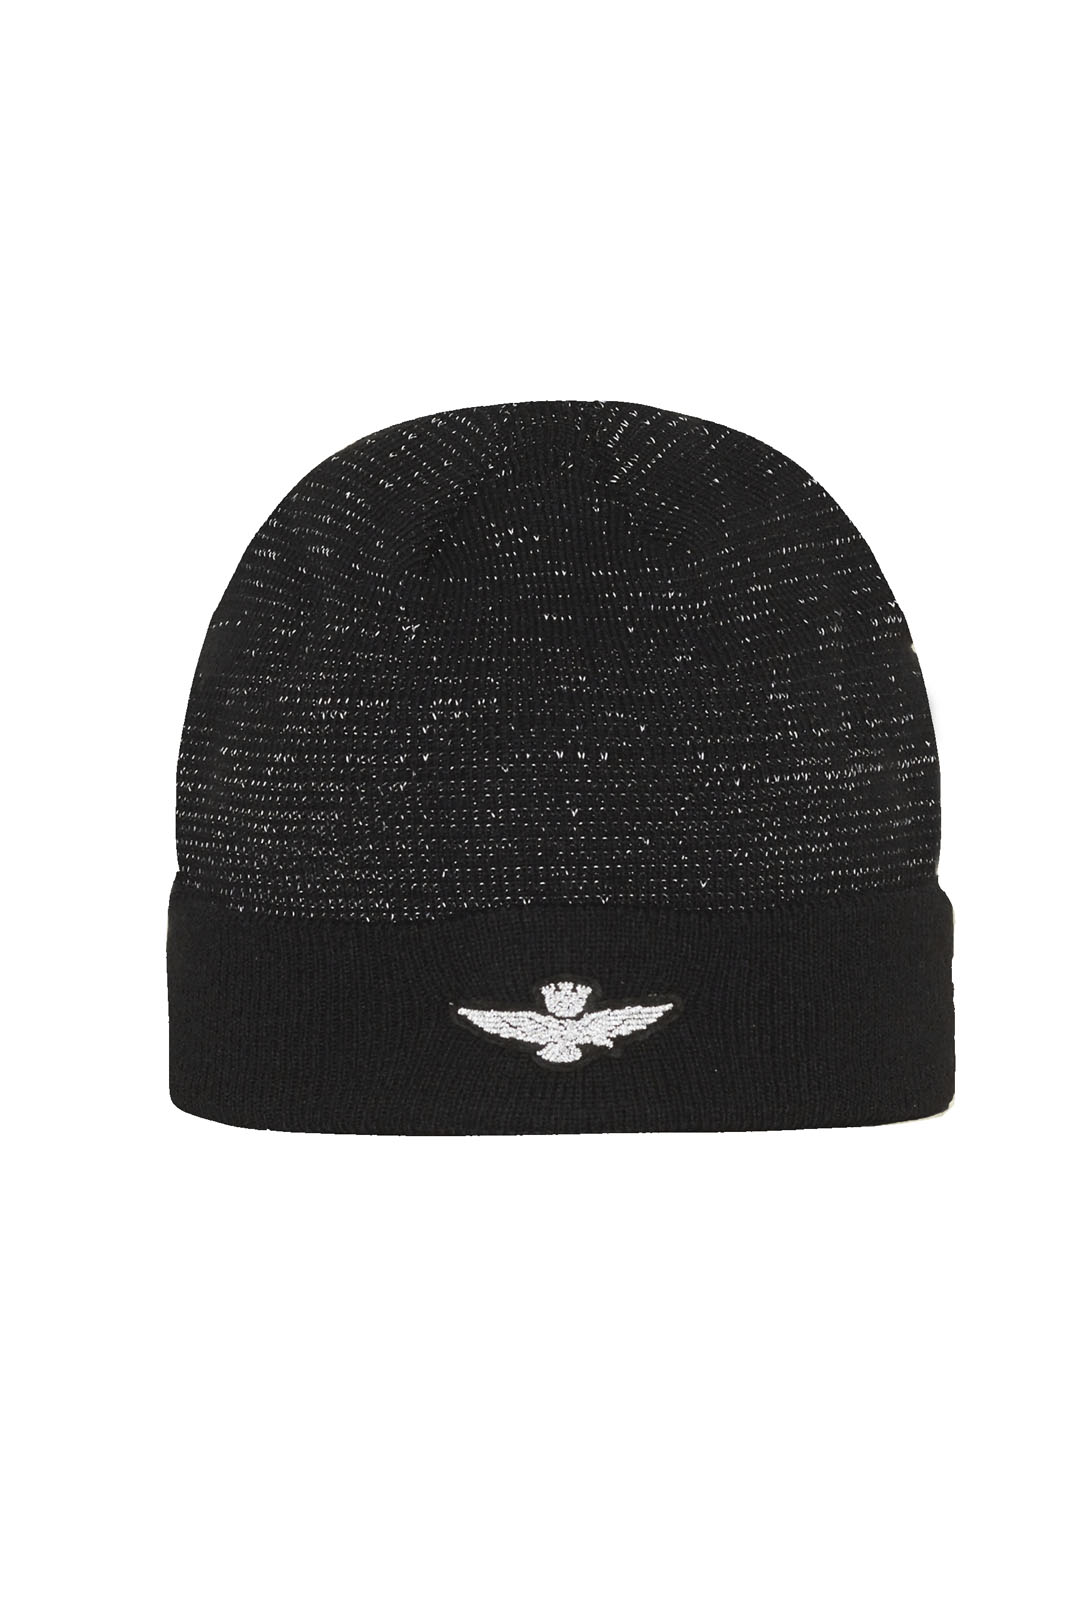 Knit cap with reflecting thread          1